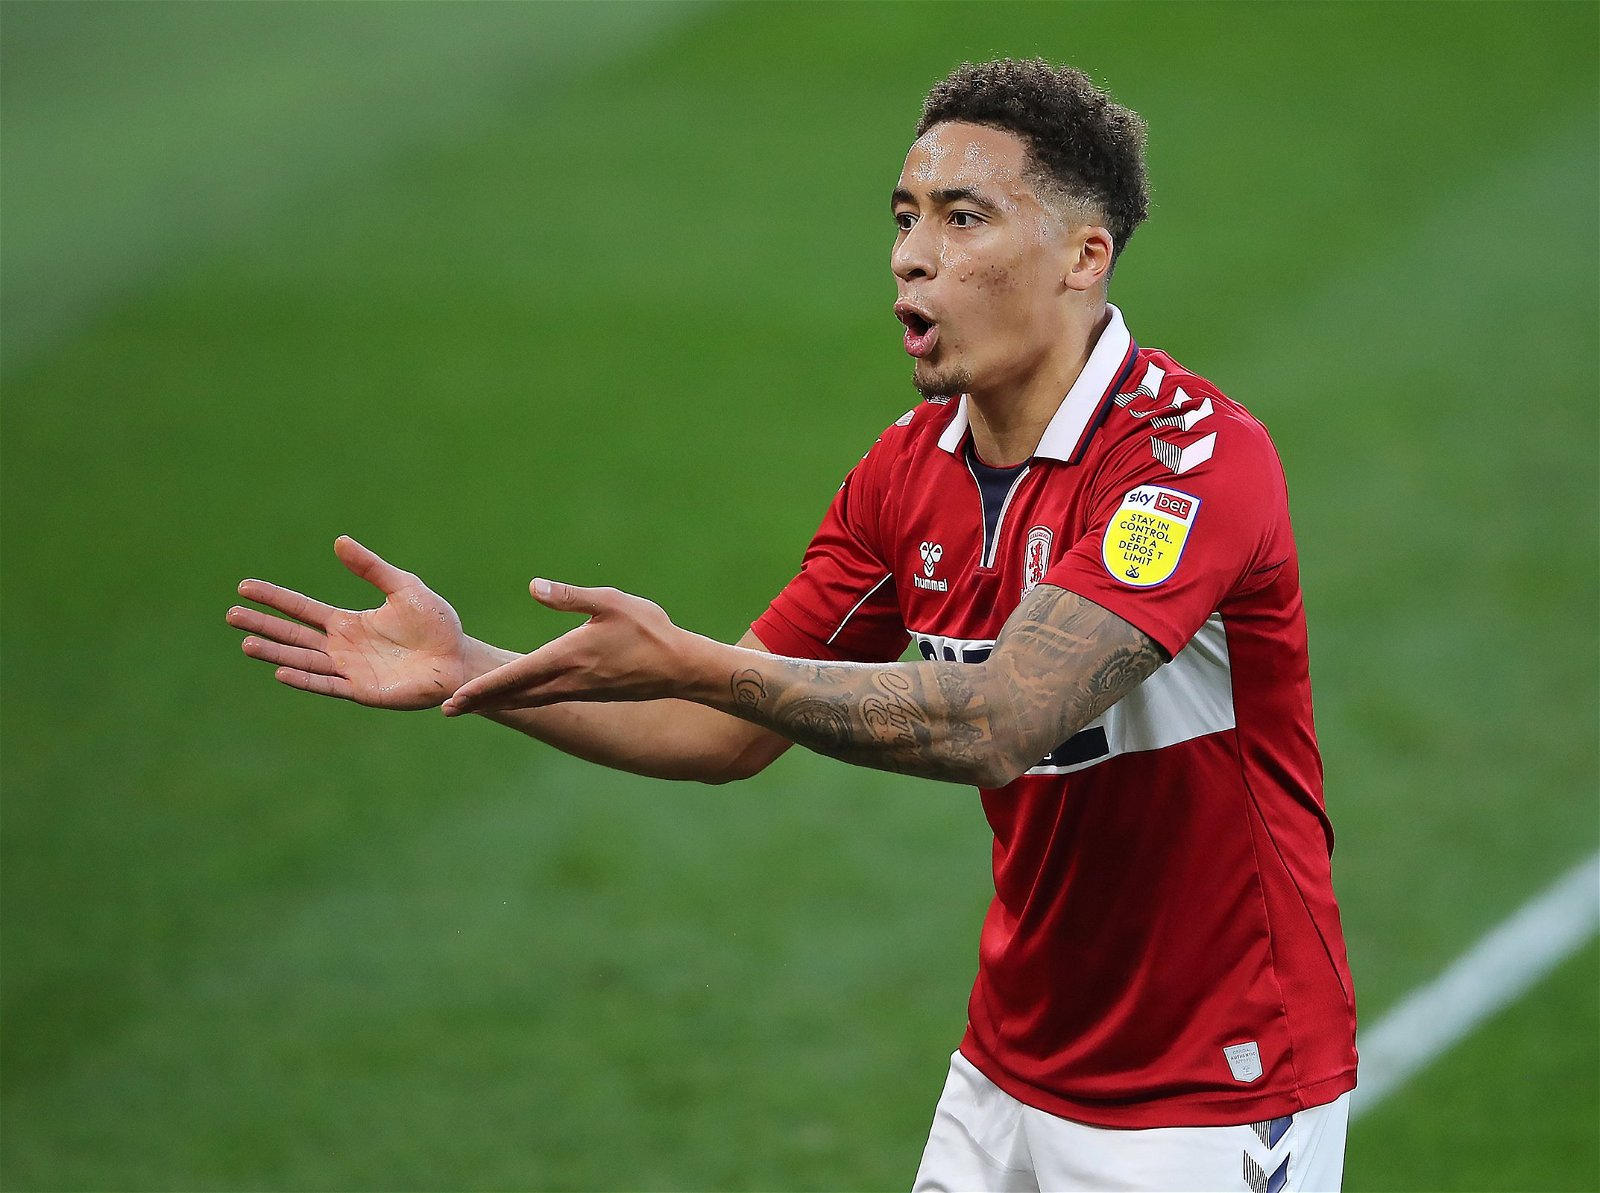 Leeds transfers: Whites eye swoop for Middlesbrough's Marcus Tavernier